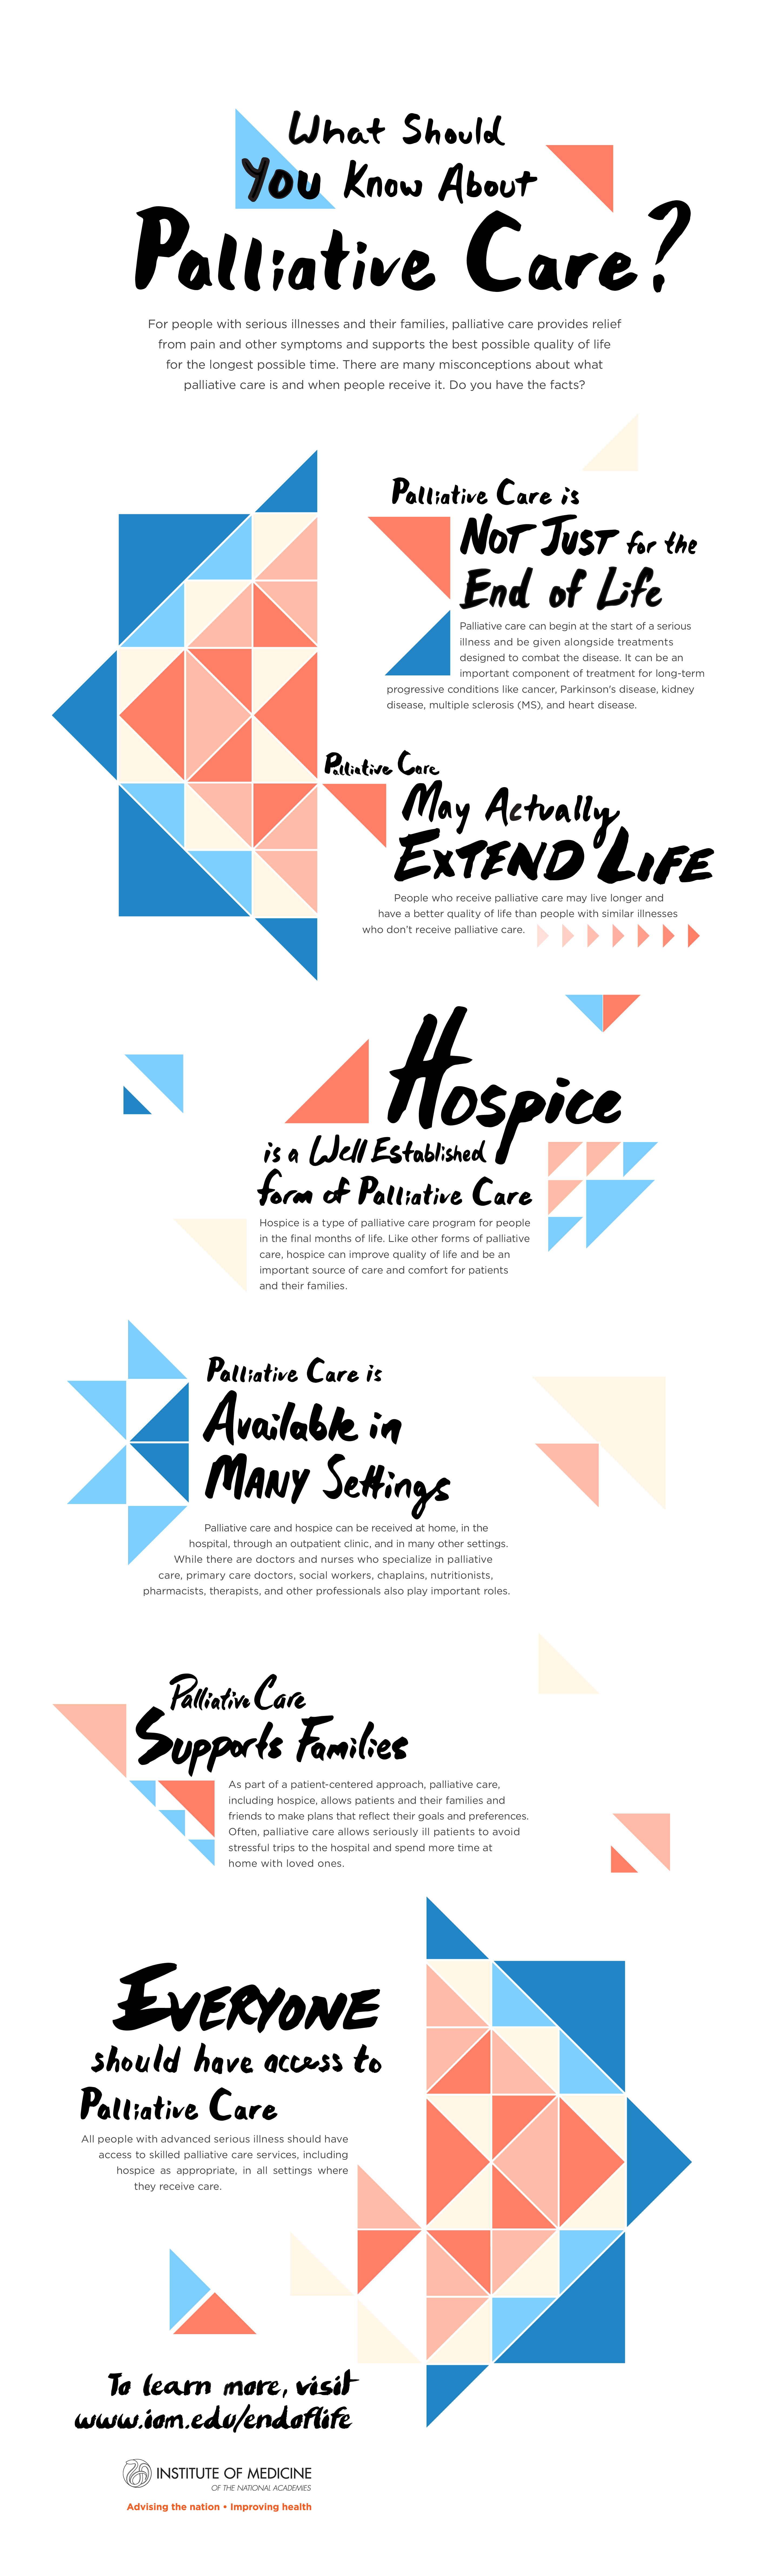 infographic what should you know about palliative care find out at